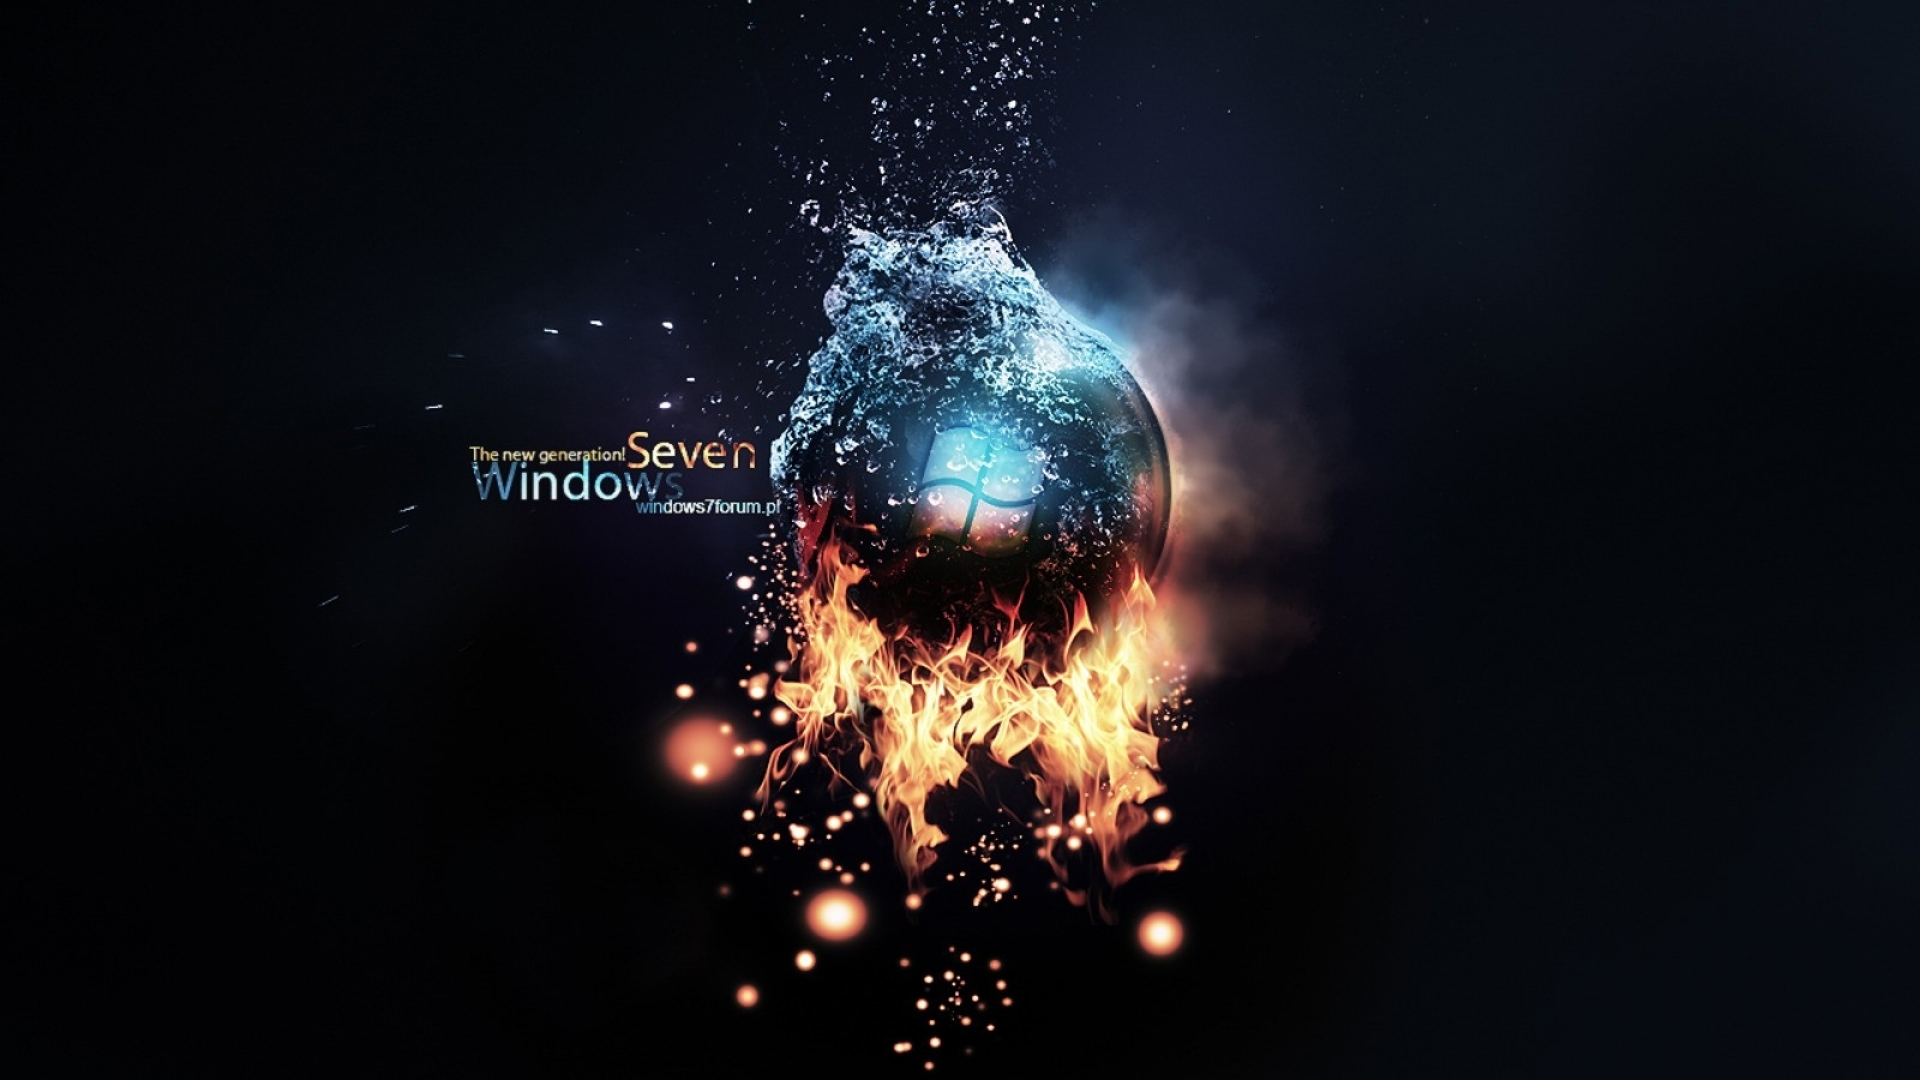 windows 7 full hd wallpaper and background image | 1920x1080 | id:373204